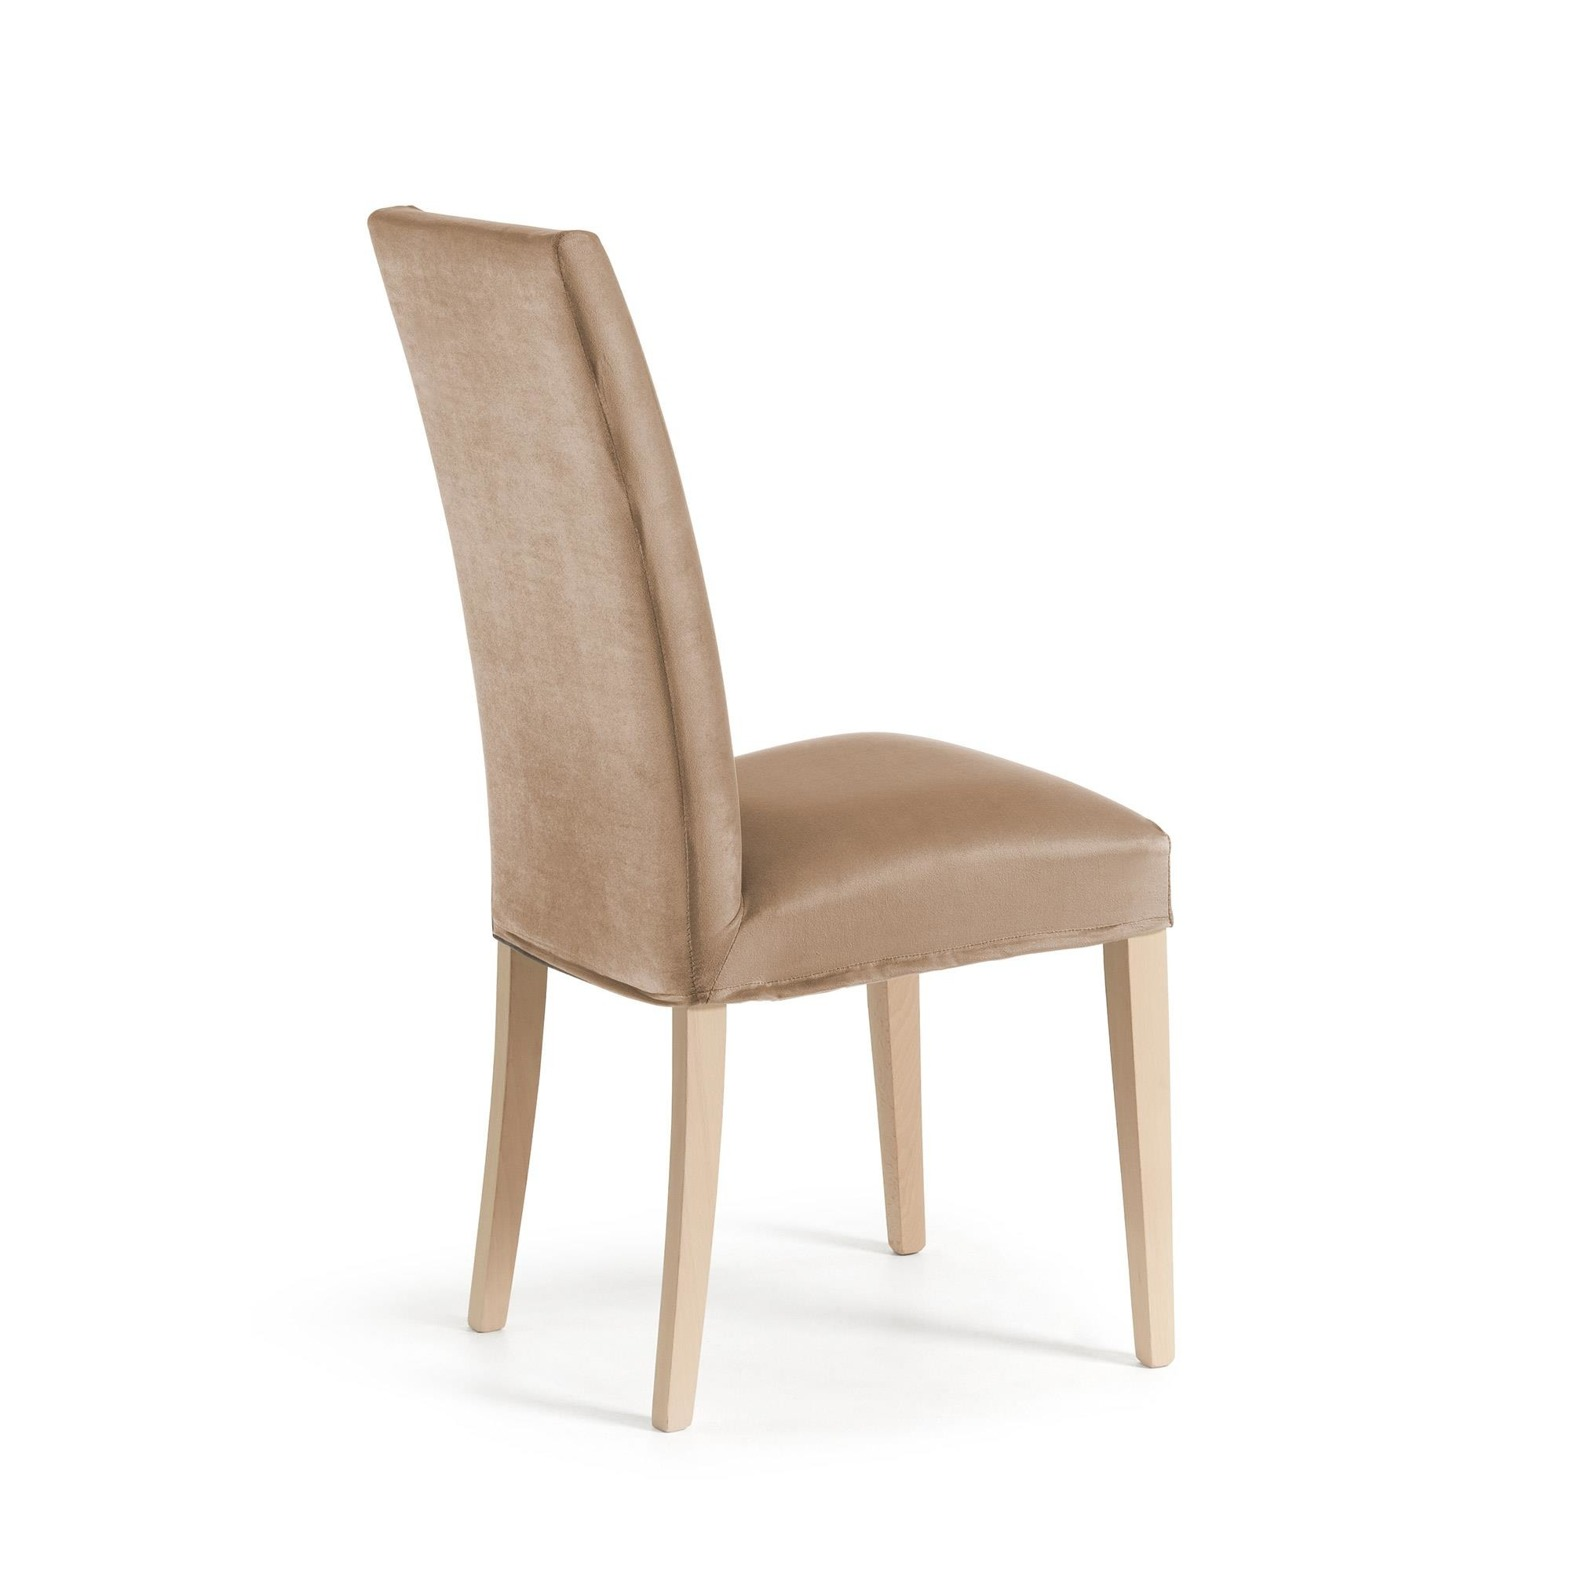 MERCEDE Chair removable natural wood fabric taupe